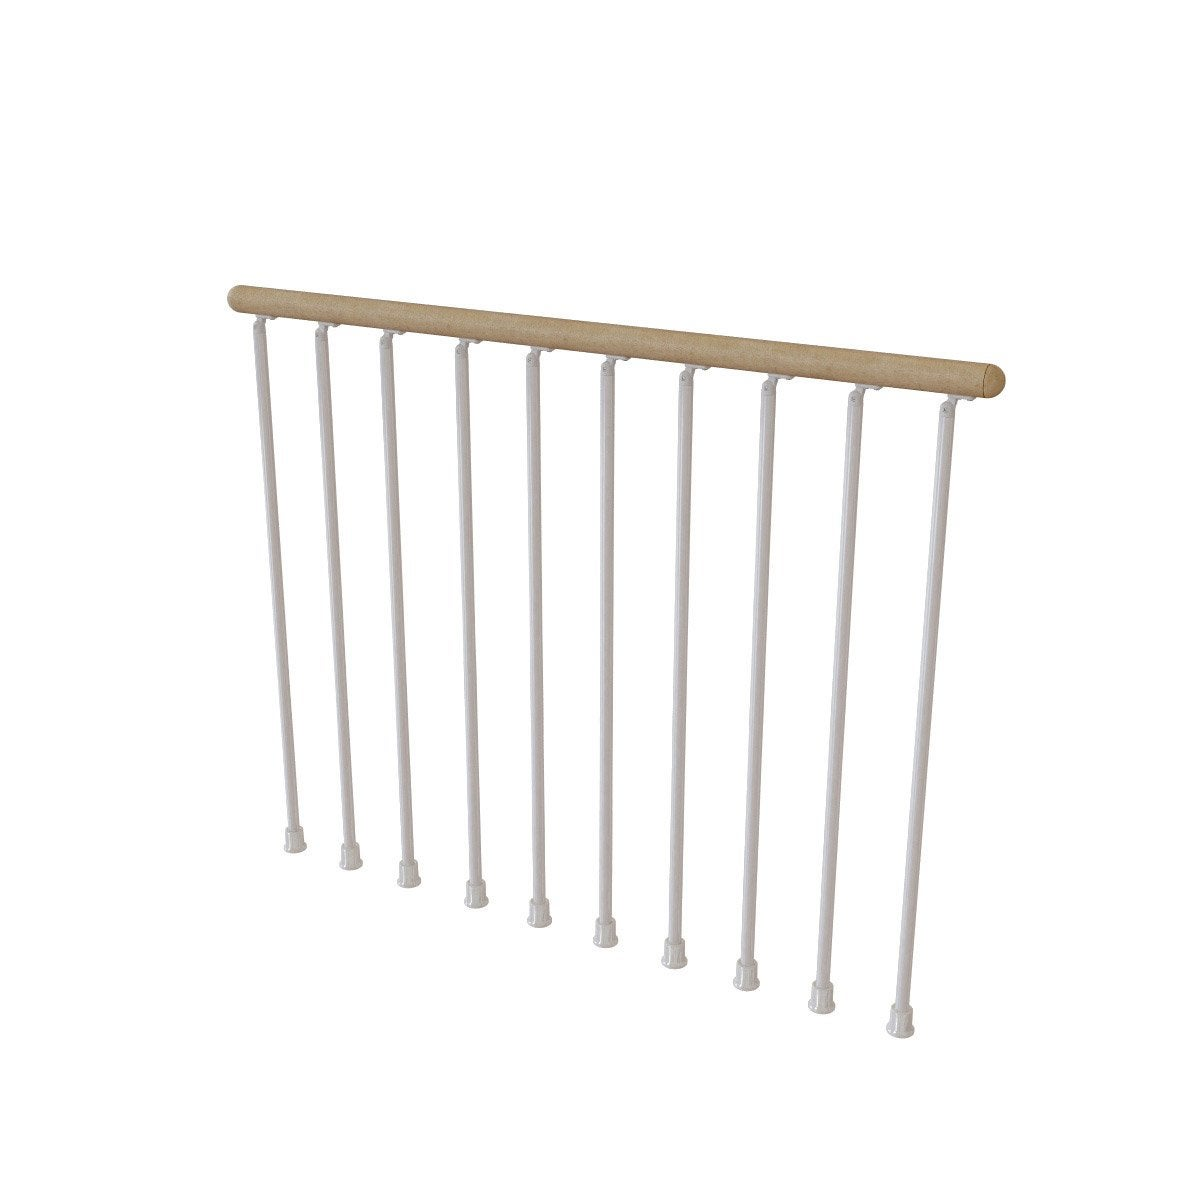 Balustrade blanc bois clair leroy merlin - Balustrade pvc leroy merlin ...